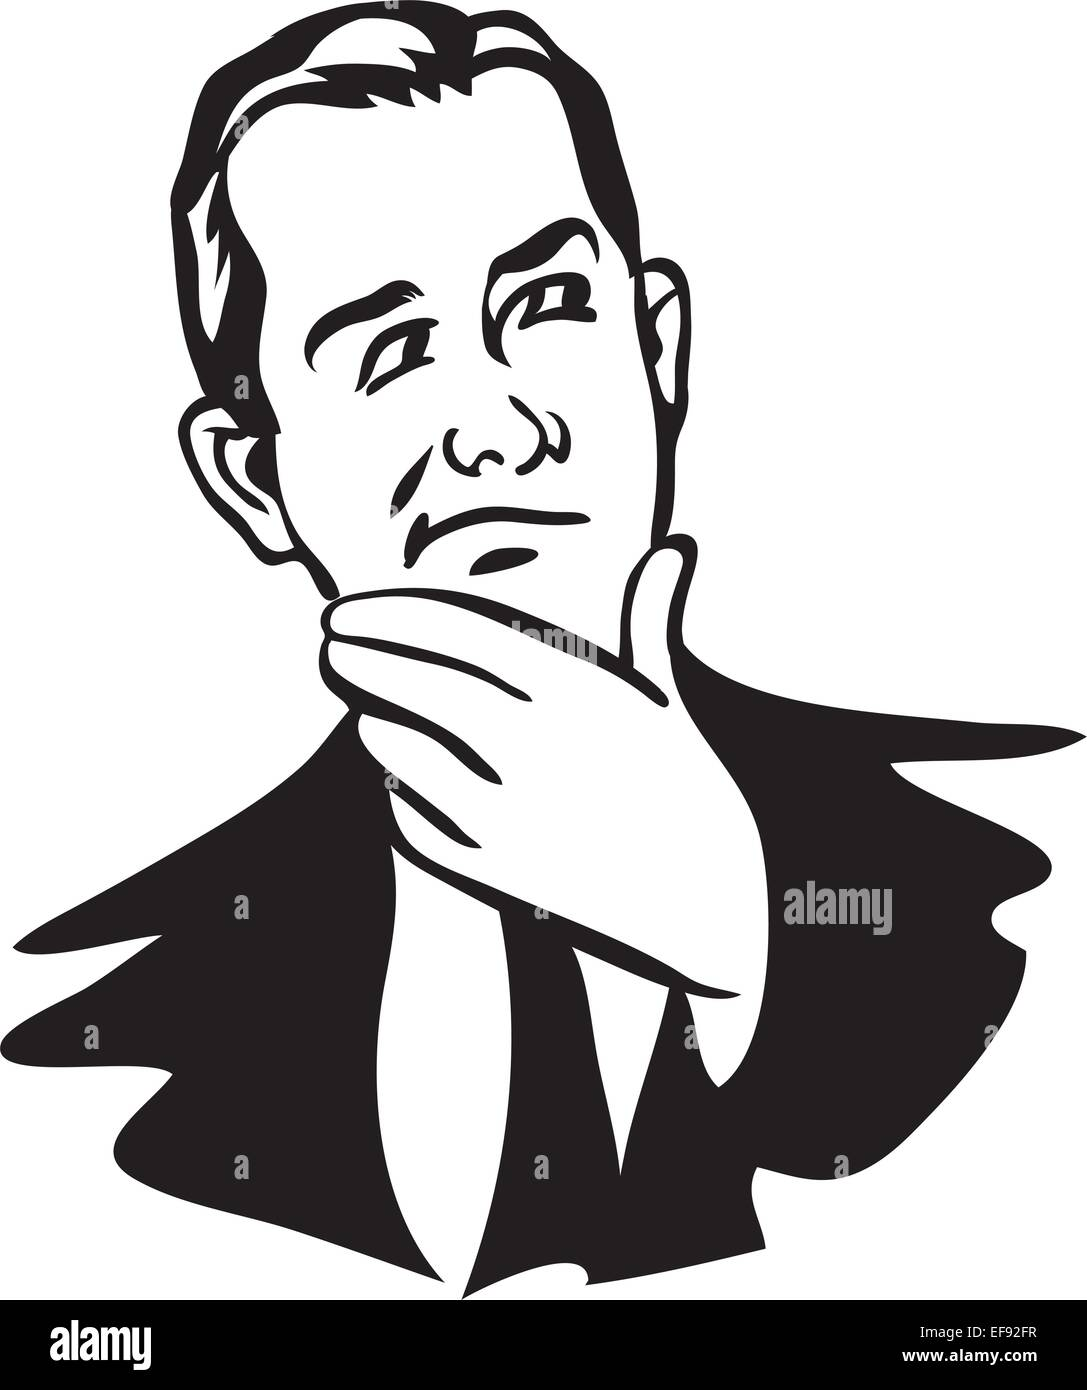 A man thinking with his hand on his chin - Stock Vector